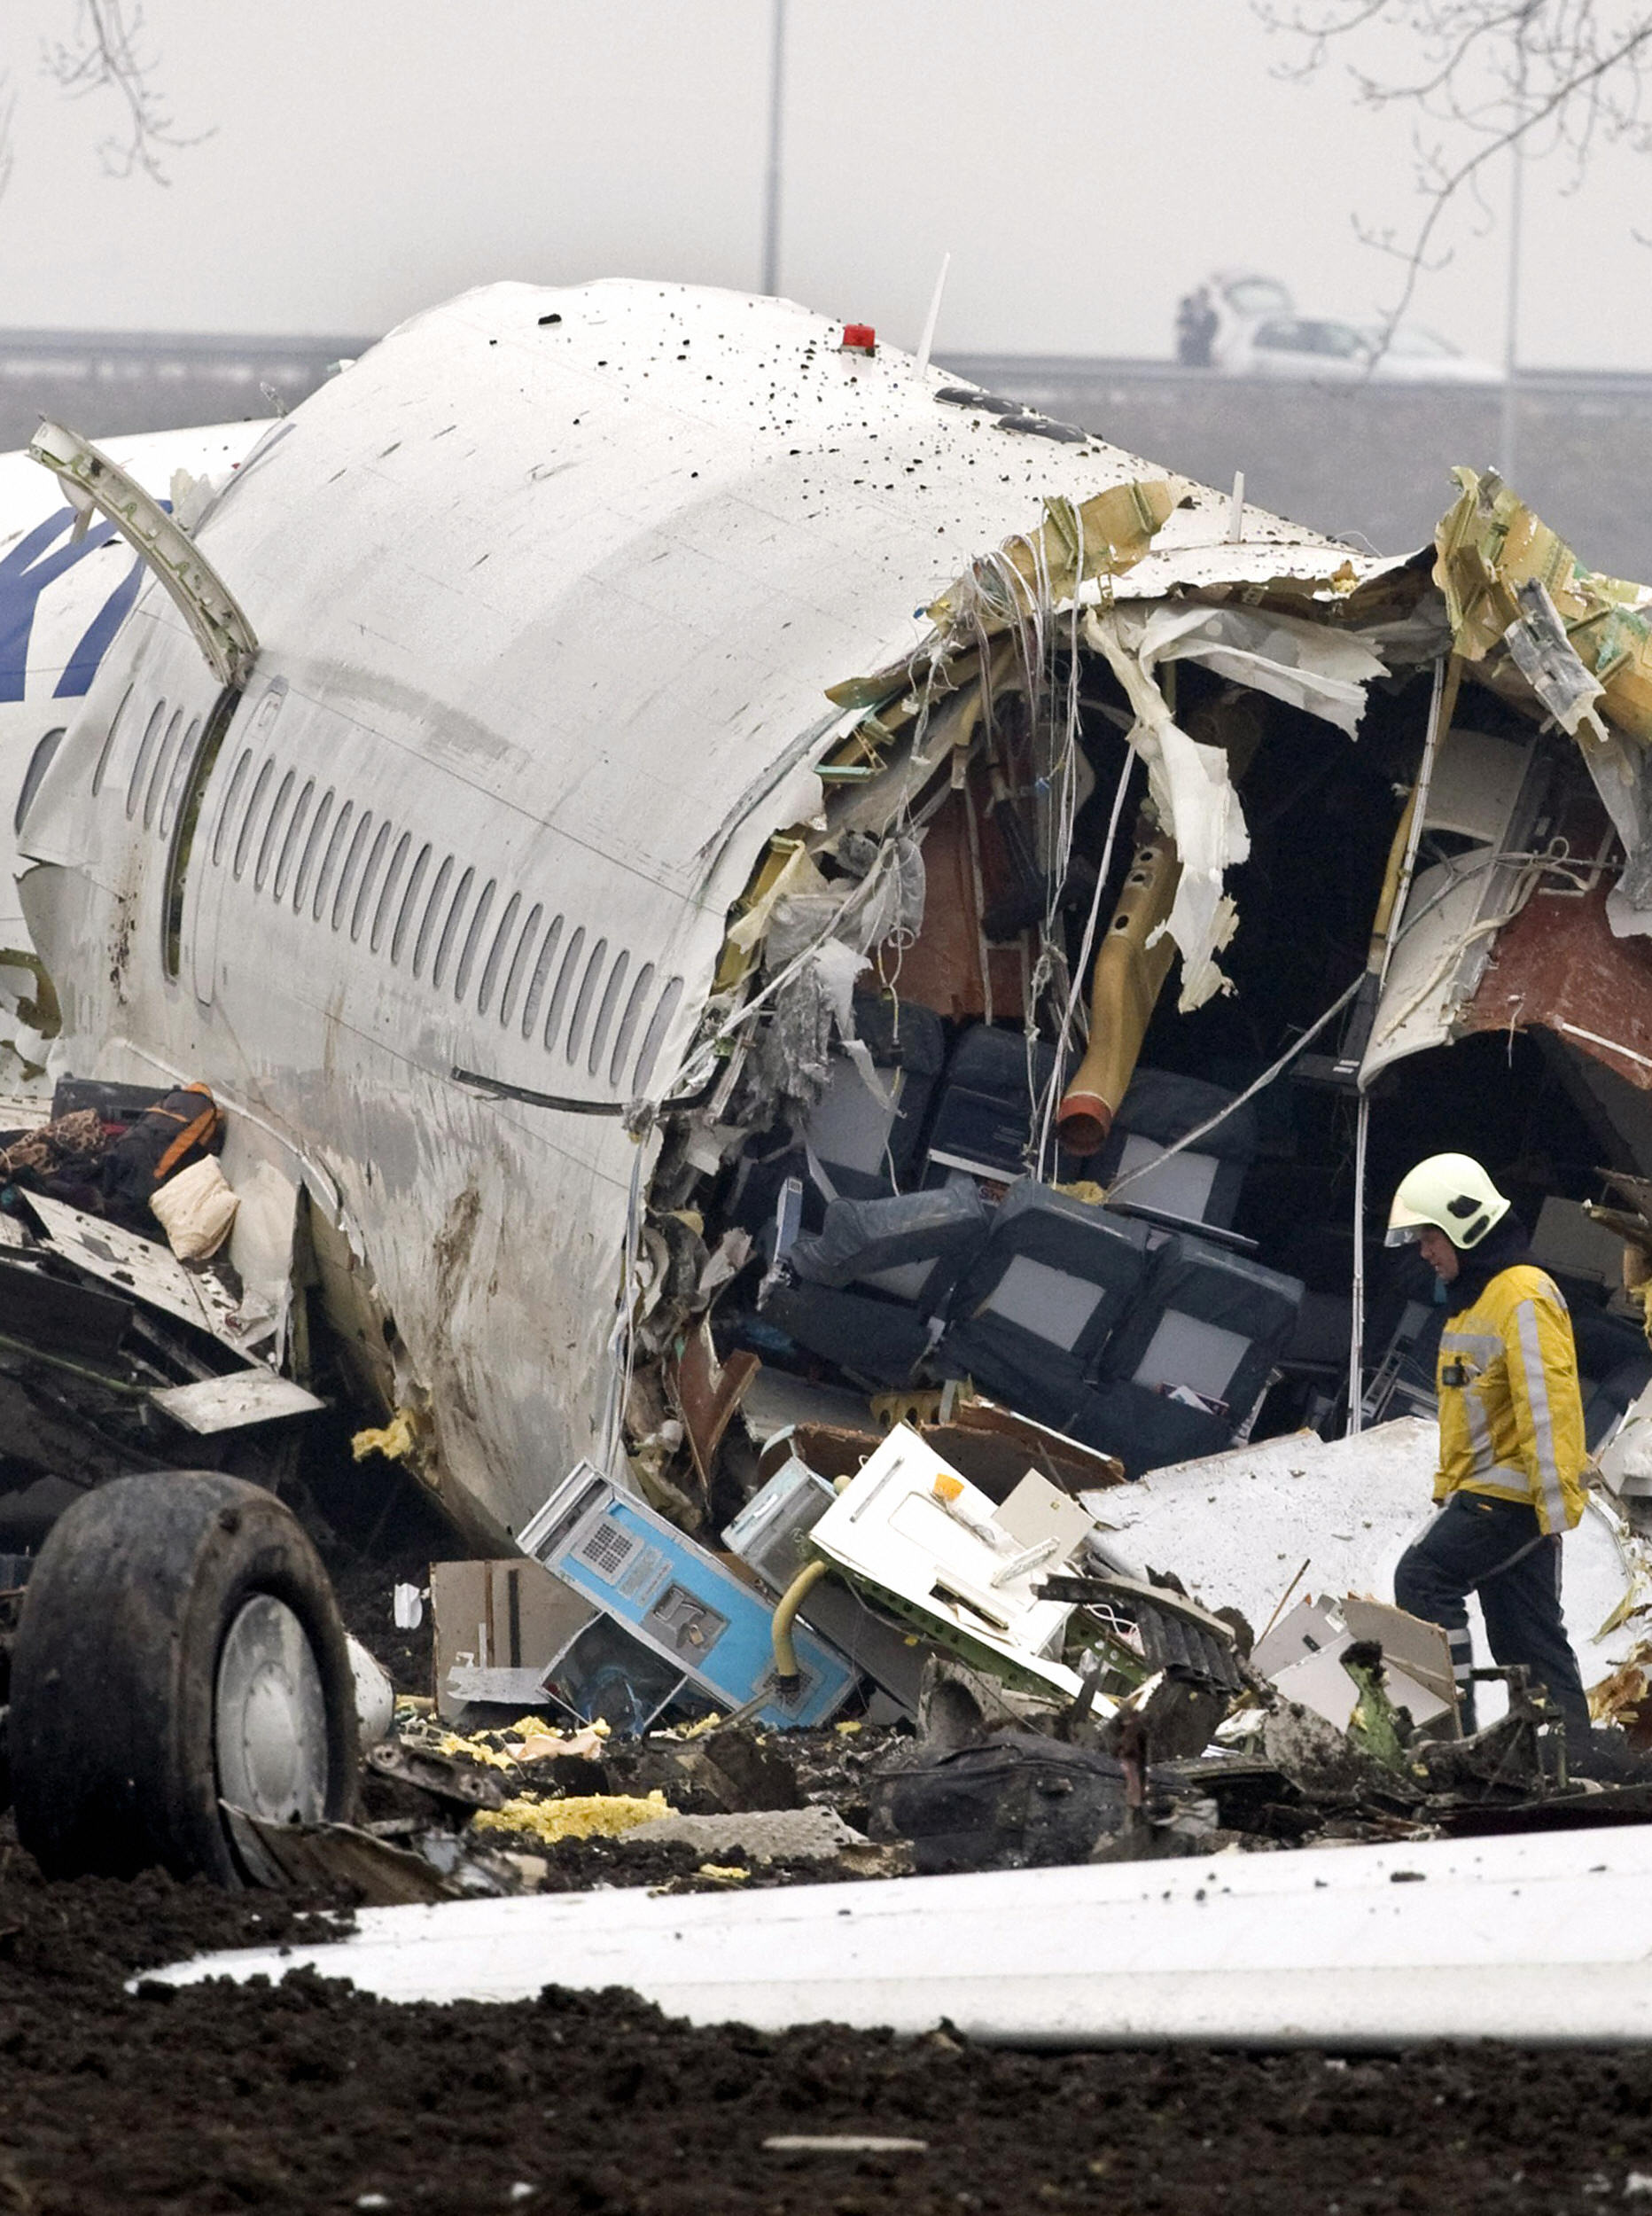 MARCEL ANTONISSE/AFP/Getty Images. Emergency services work at the scene of the Turkish Airlines passenger plane which crashed on February 25, 2009 while landing at Schiphol airport in Amsterdam.